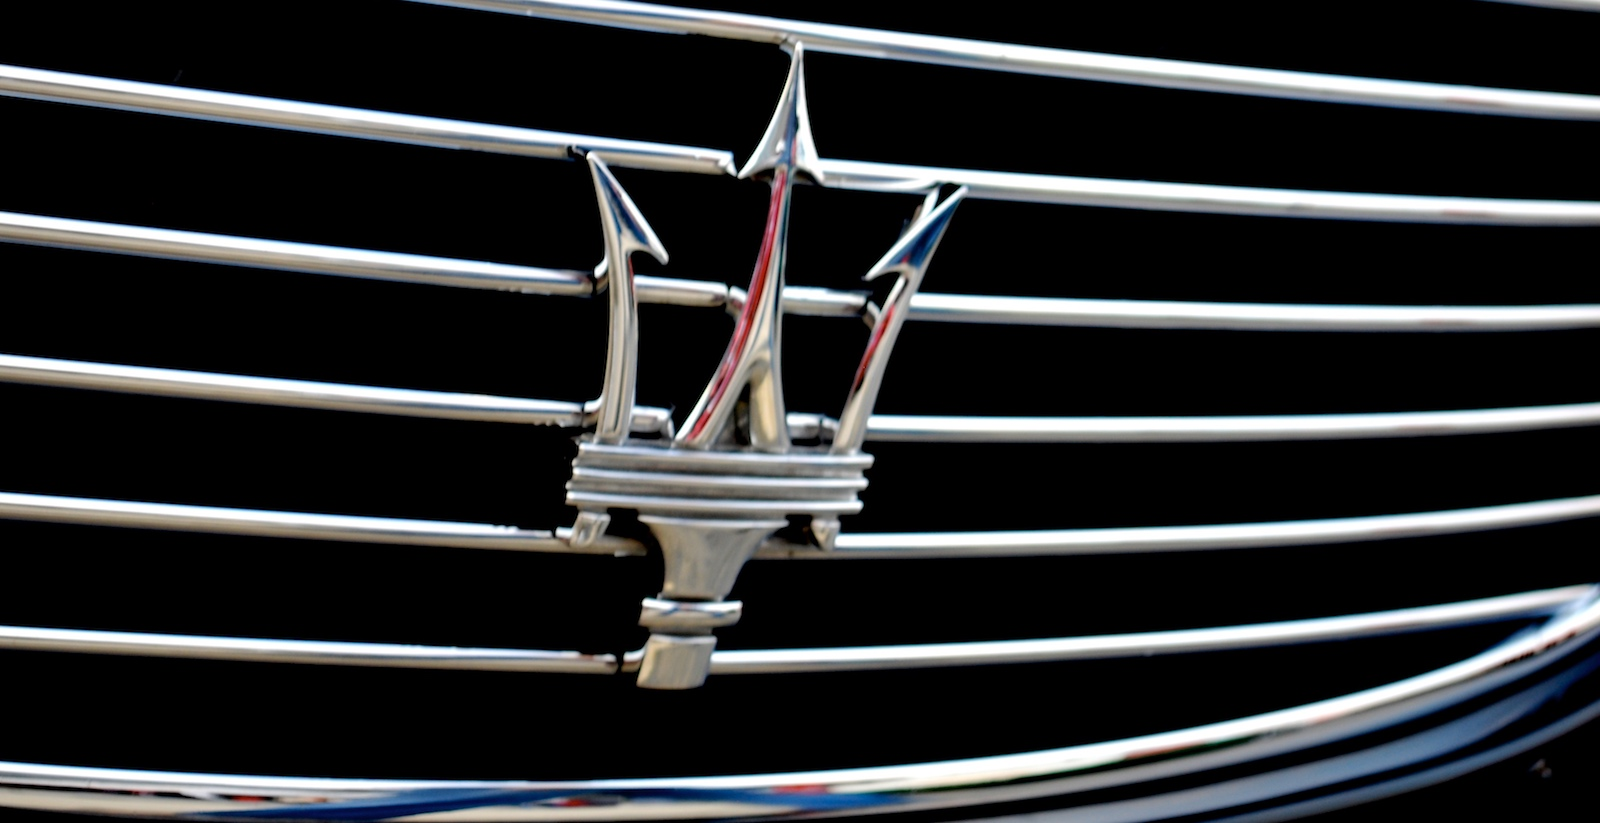 Maserati Trident (Photo: Ángel Álvarez/ Flickr)